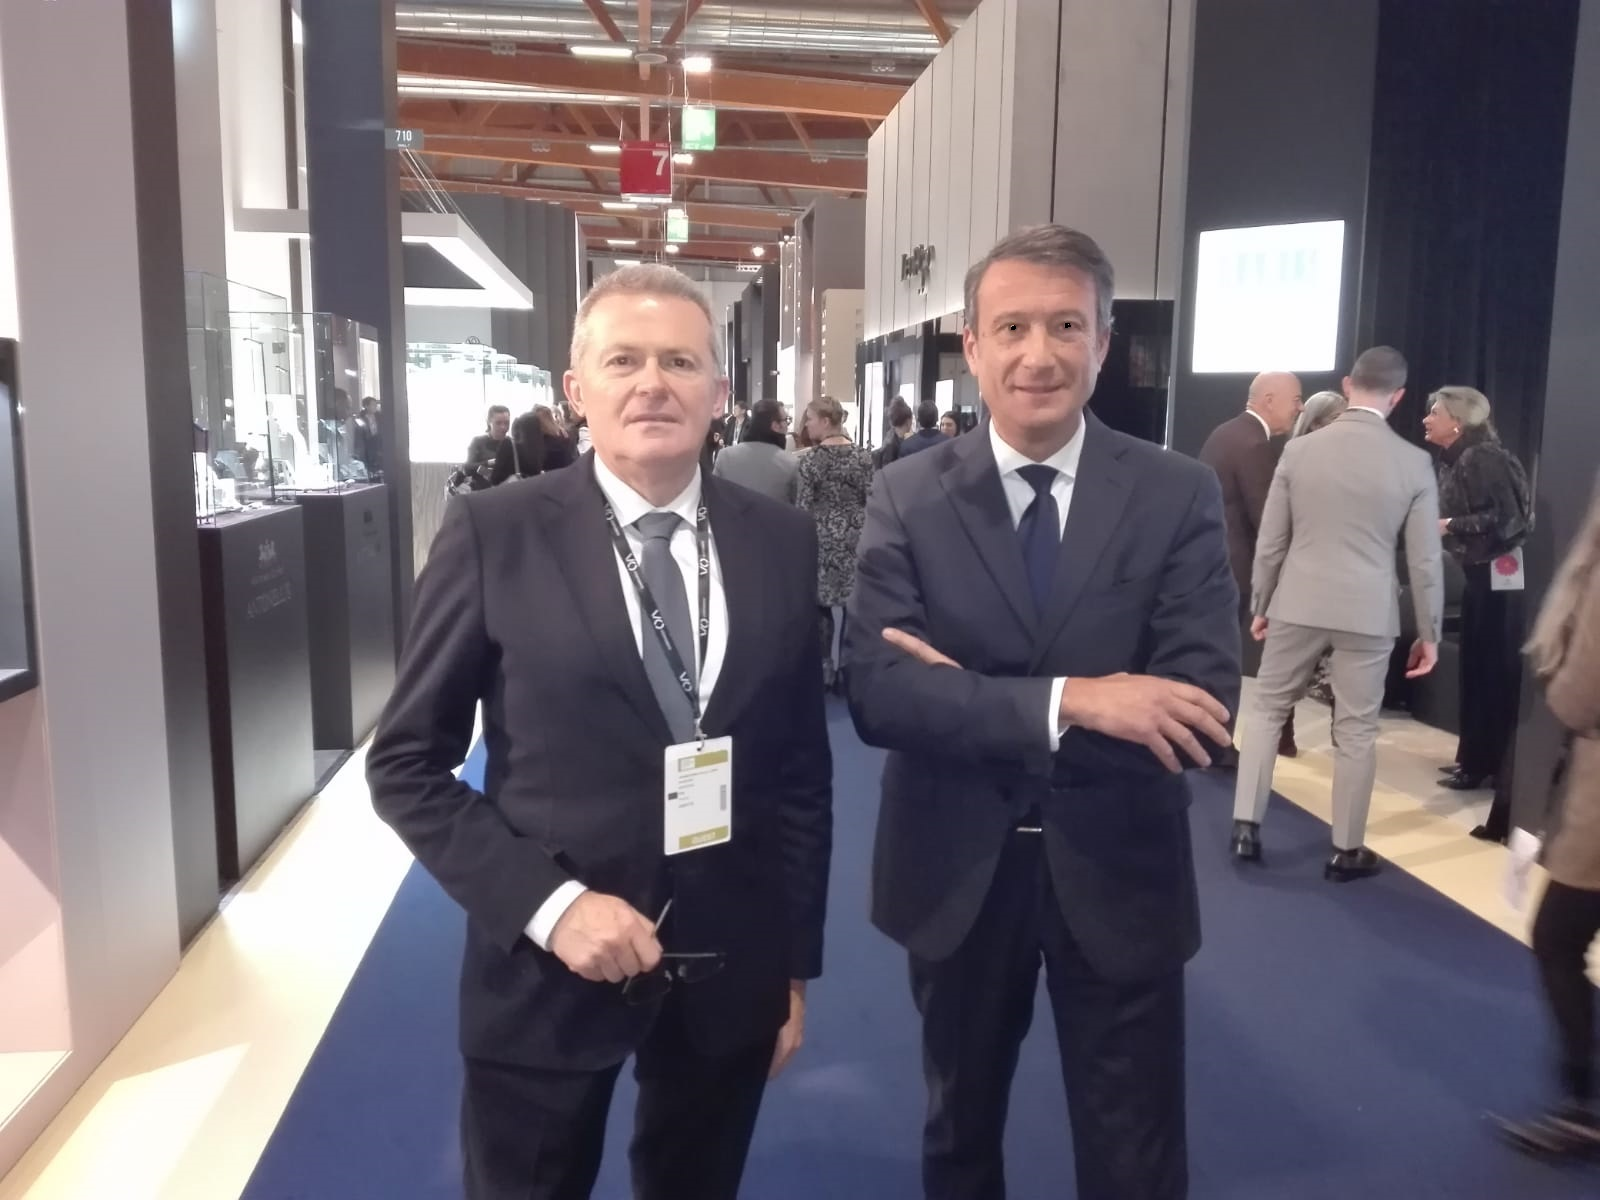 Guasconi e Salvini presenti al taglio del nastro di VOJ (Vicenzaoro January) – The Jewellery Boutique Show